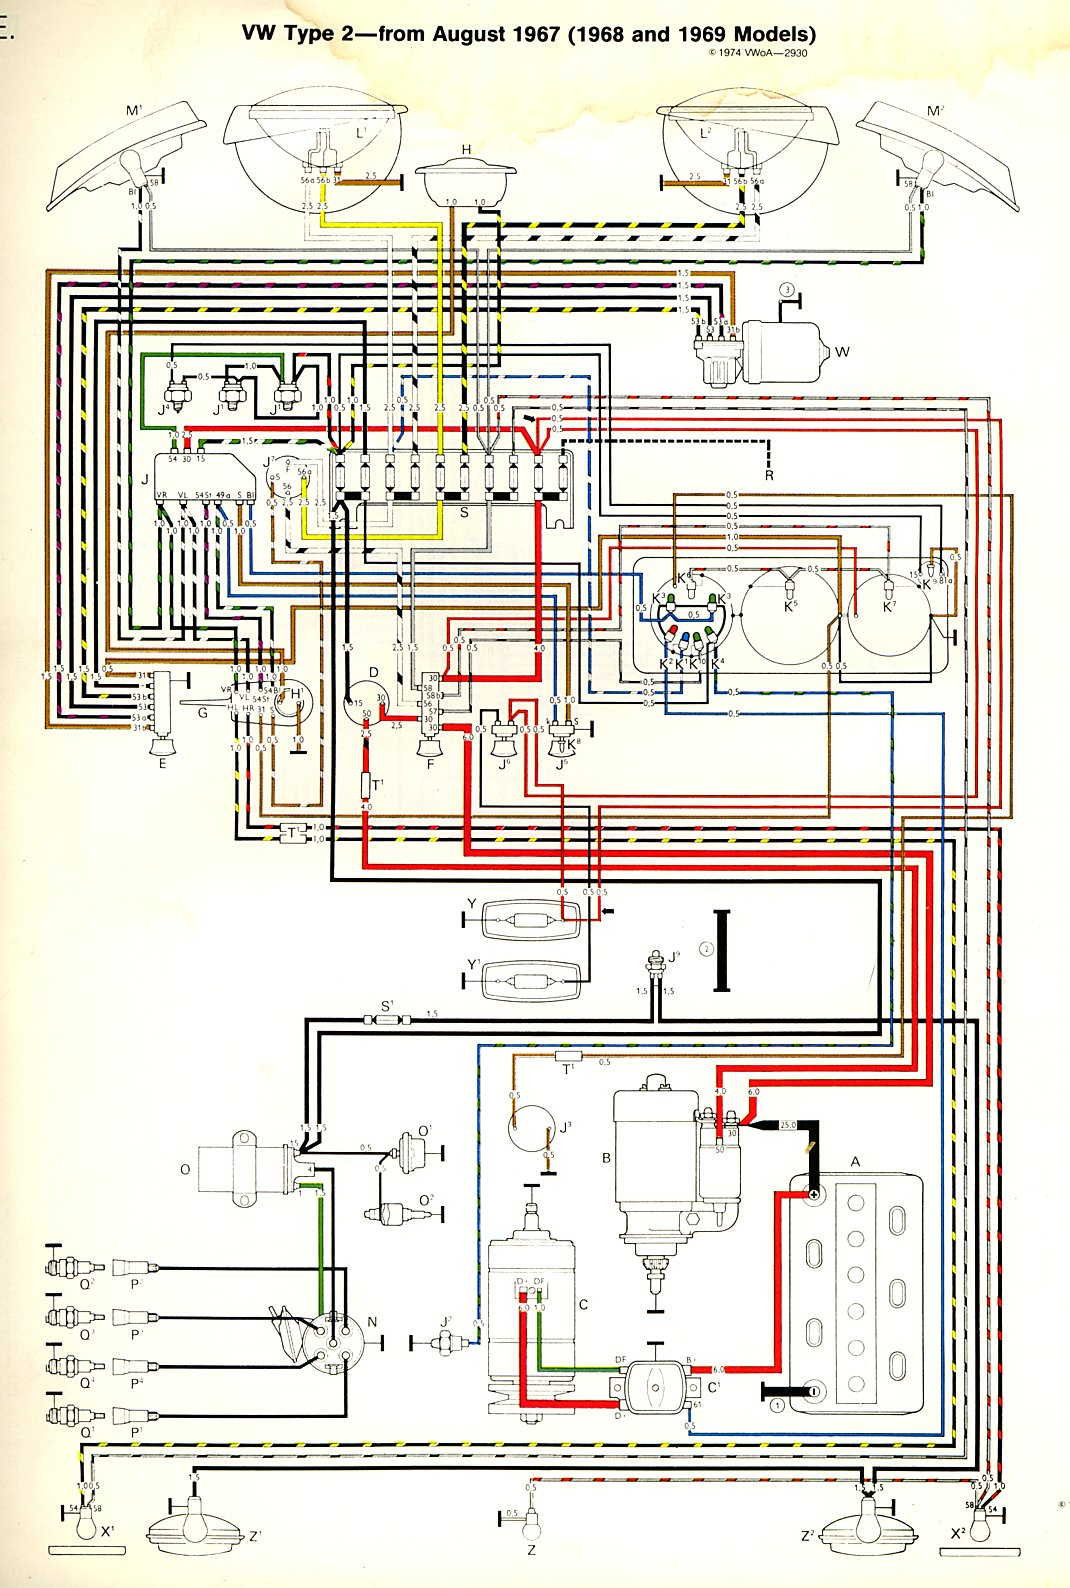 baybus_6869a 1968 69 bus wiring diagram thegoldenbug com find wiring diagram for 87 ford f 150 at cita.asia